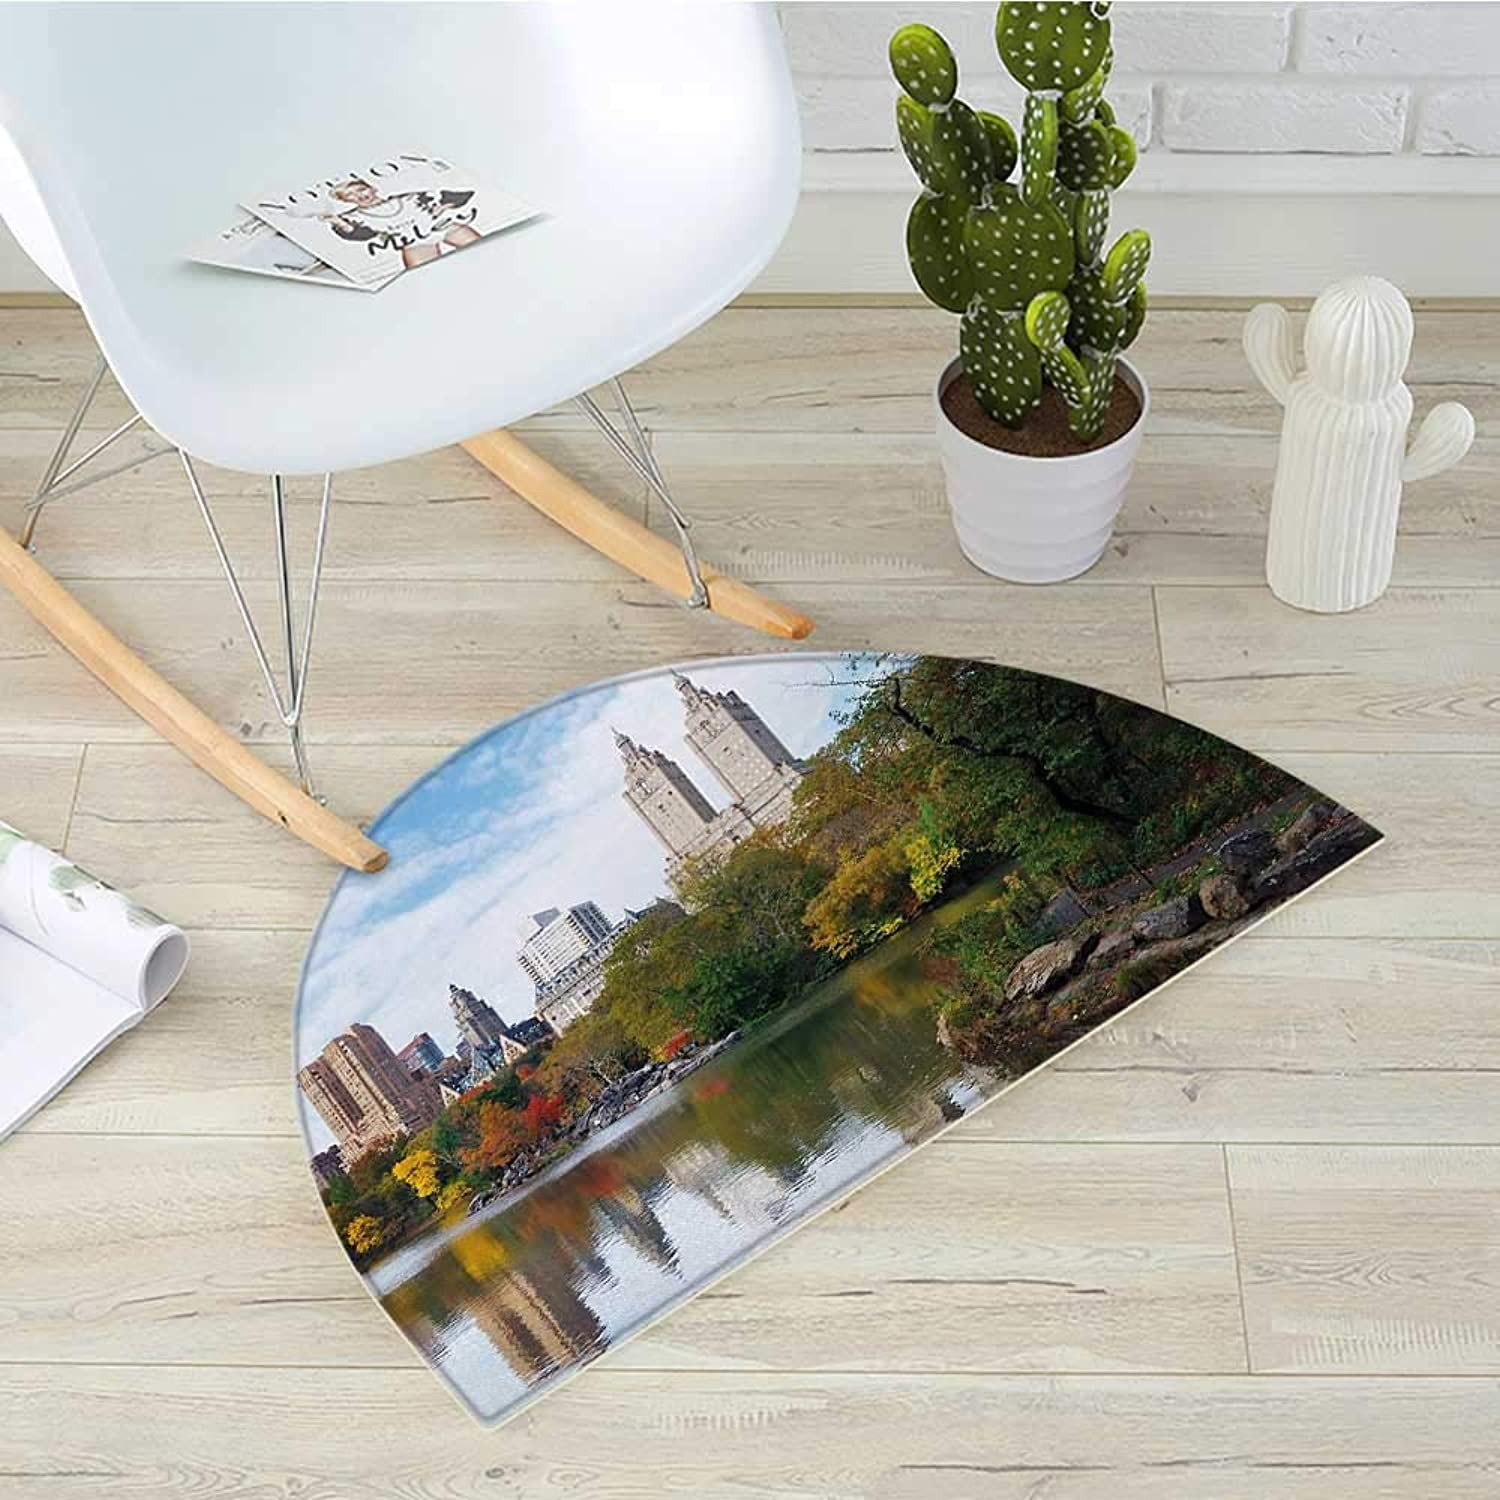 City Semicircular CushionManhattan Central Park Panorama in Autumn Scenic Lake View colorful Trees Reflection Entry Door Mat H 19.7  xD 31.5  Multicolor